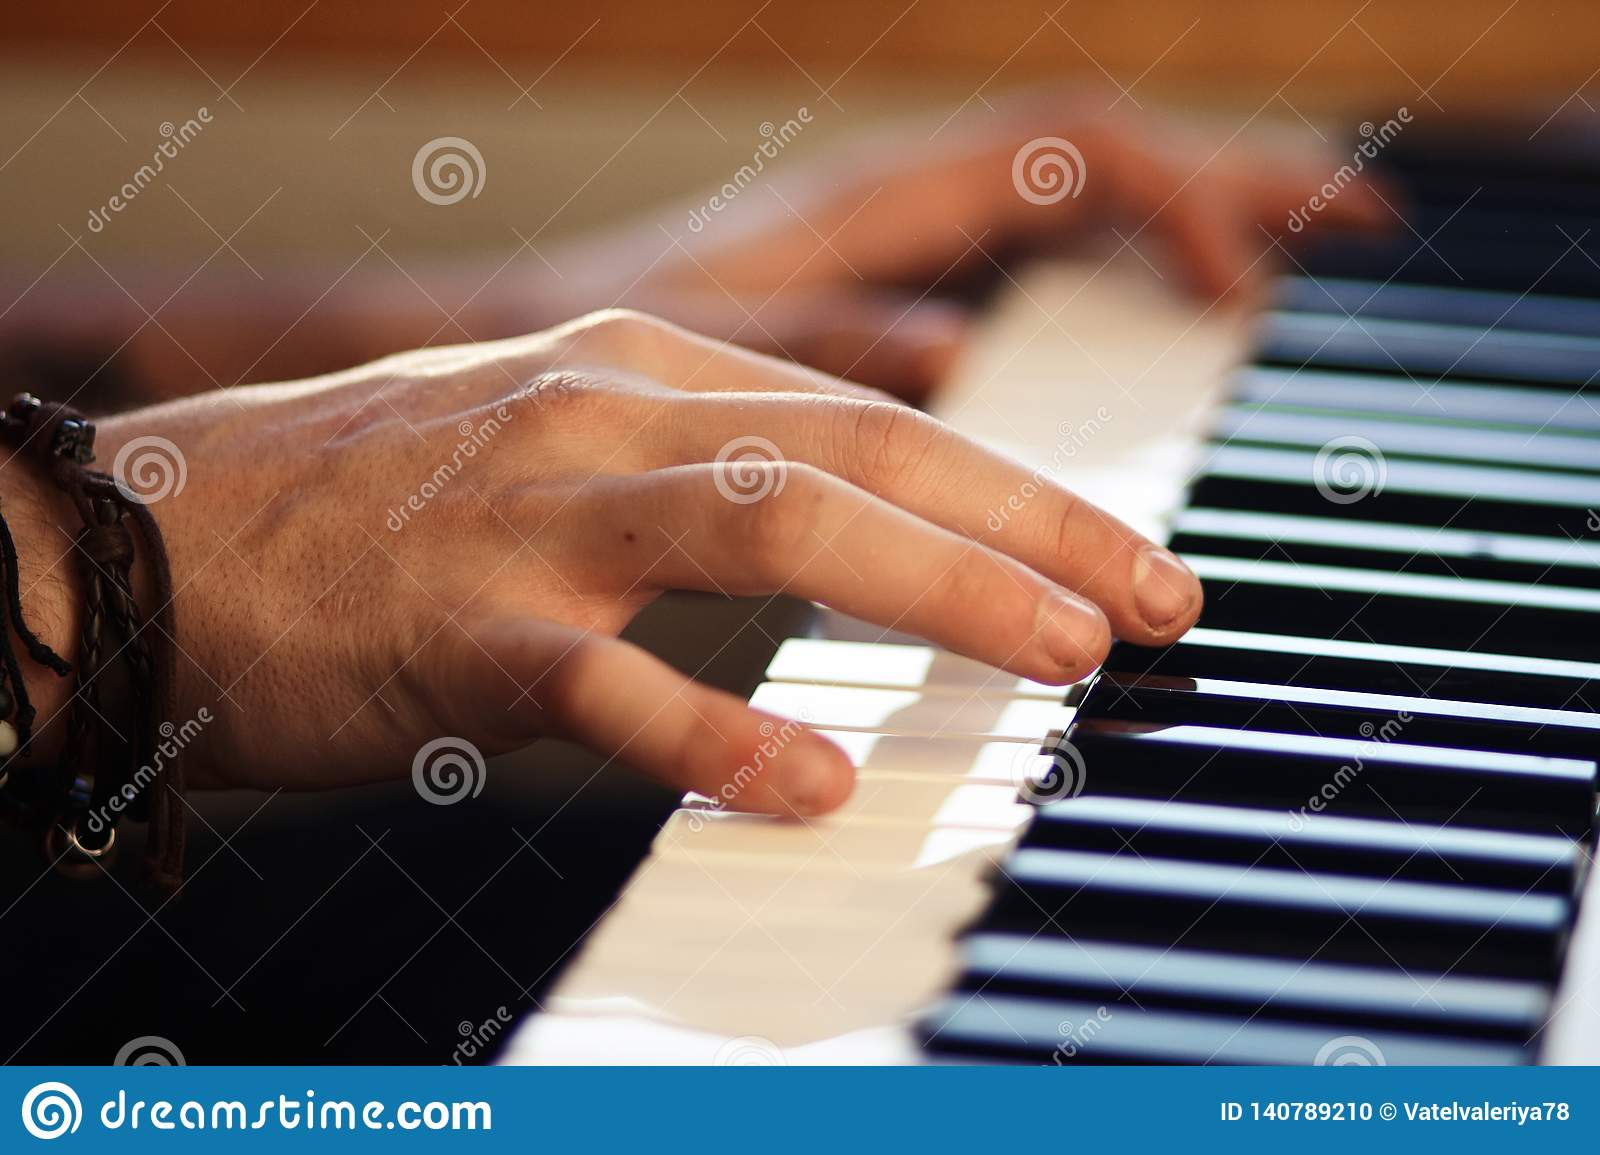 Hands playing a melody on a keyboard musical instrument